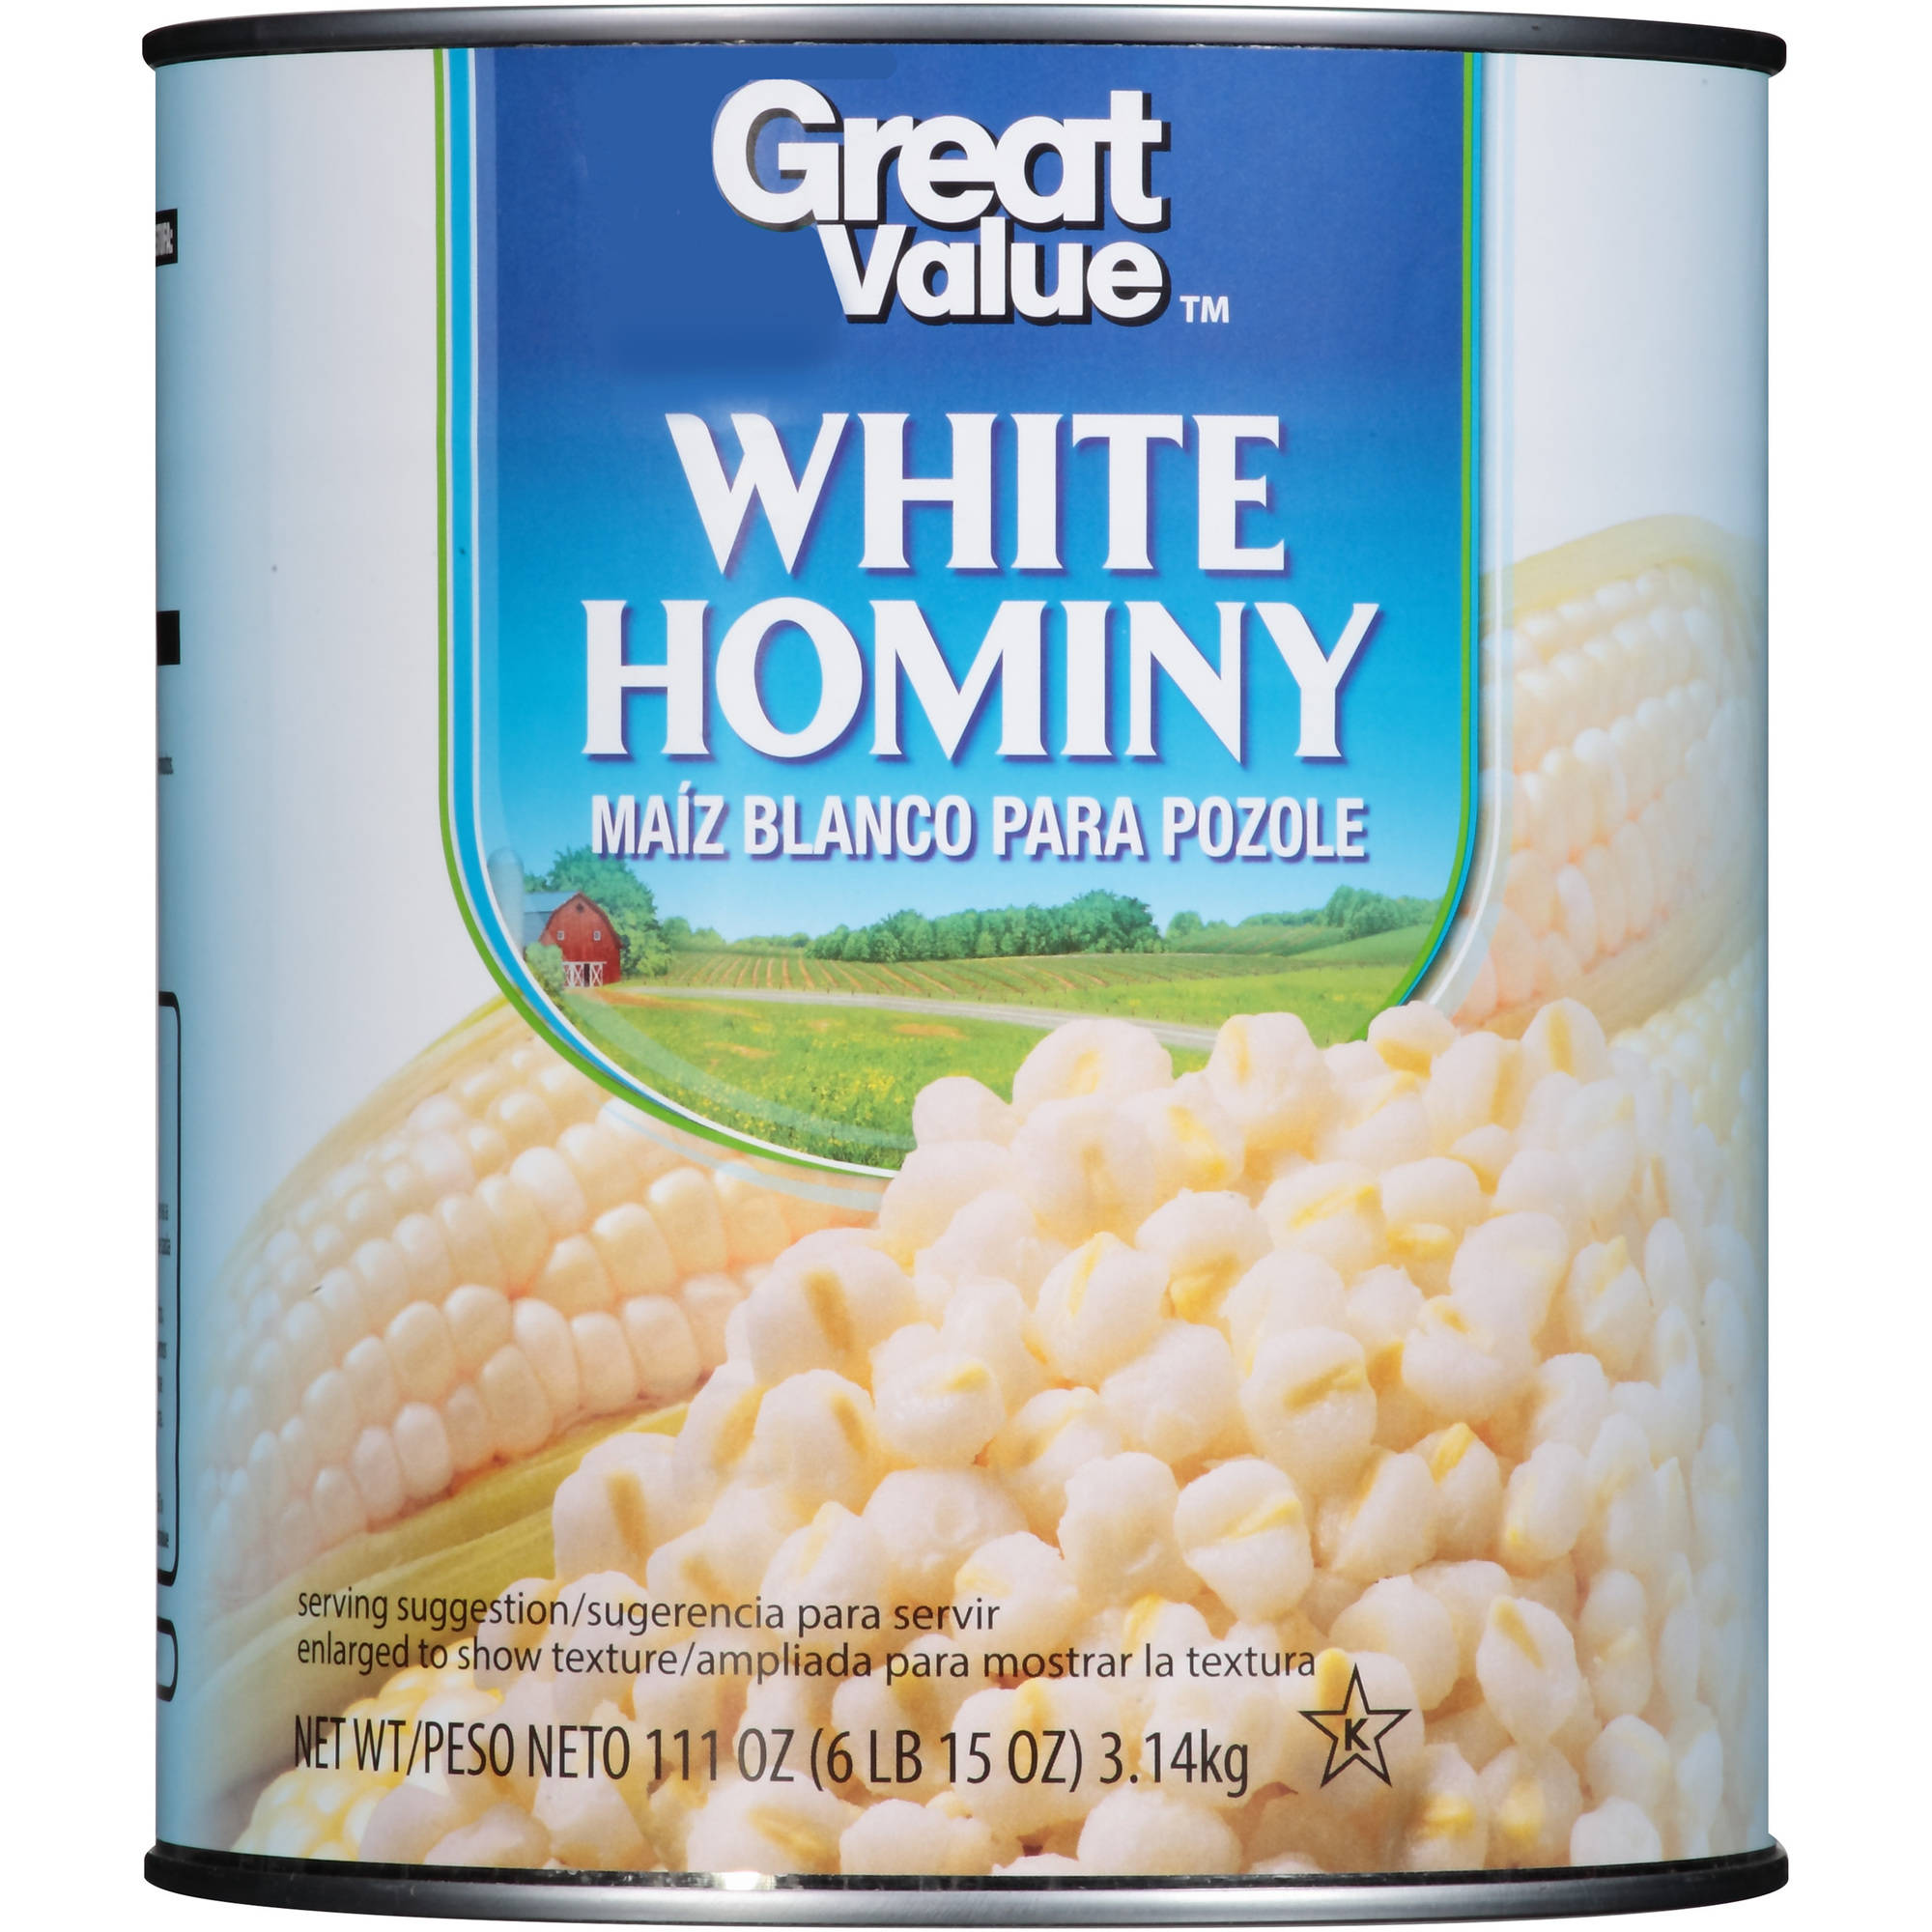 Great Value White Hominy, 111 Oz